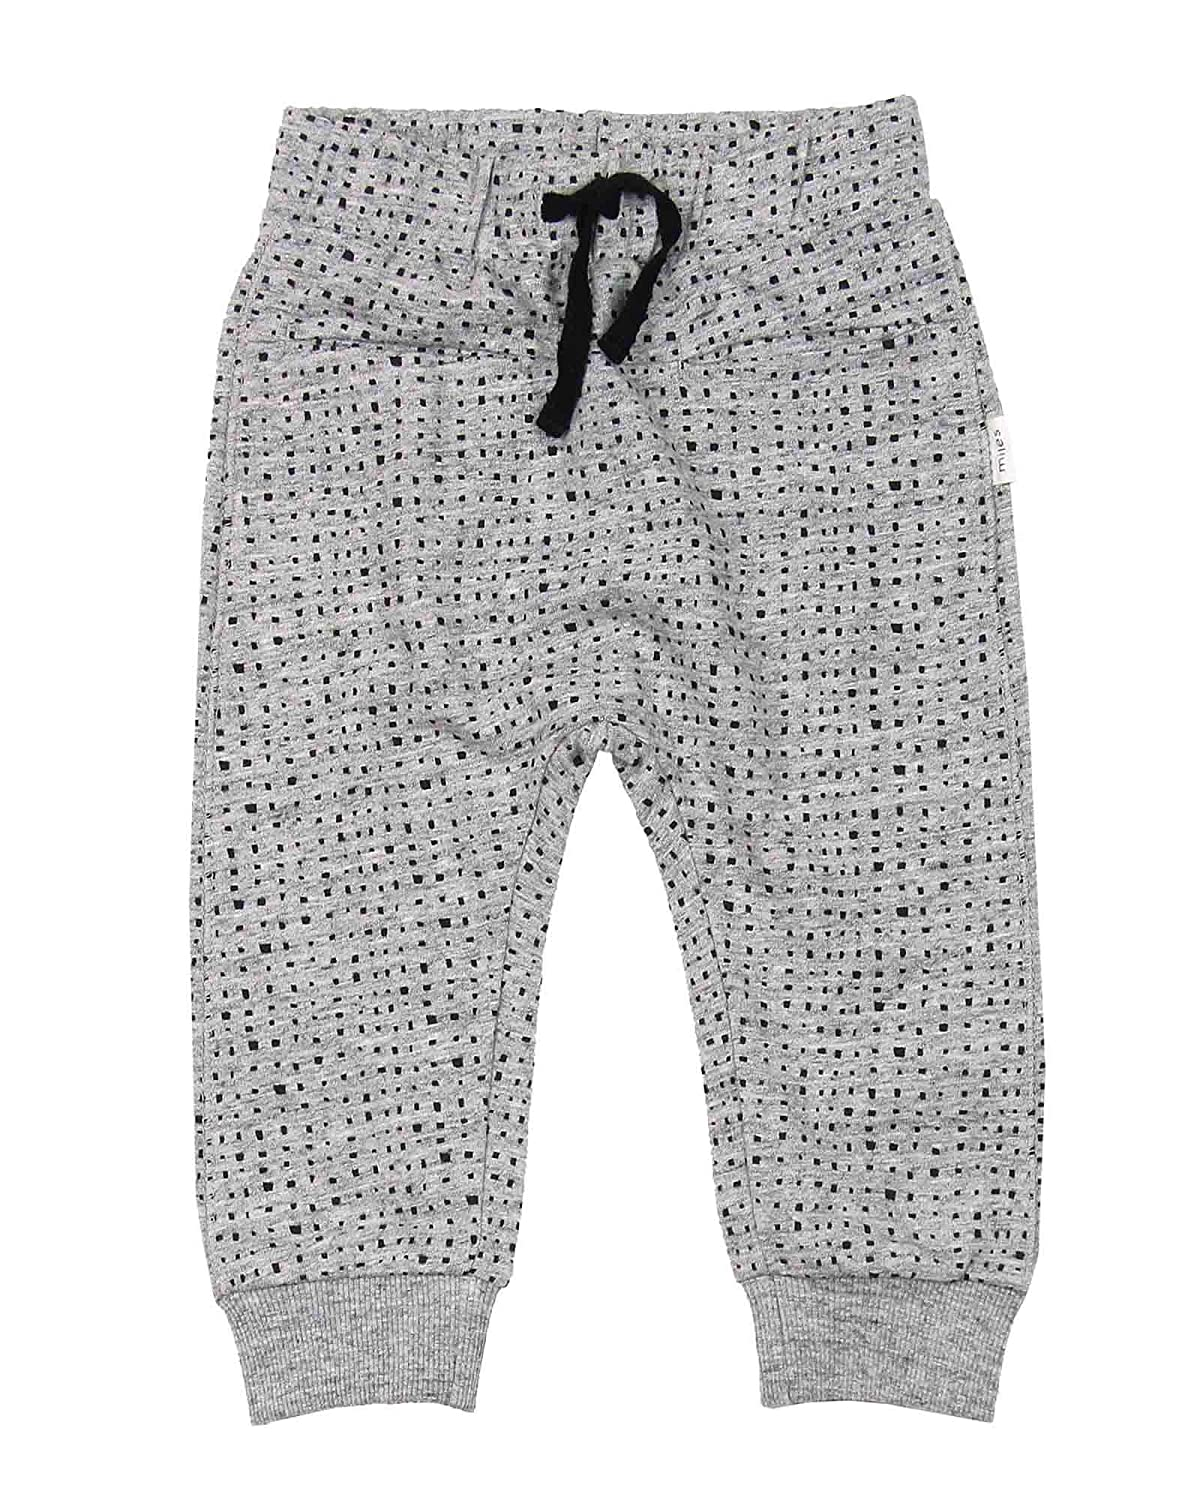 Sizes 6M-4 Miles Baby Boys Sweatpants in Blocks Print